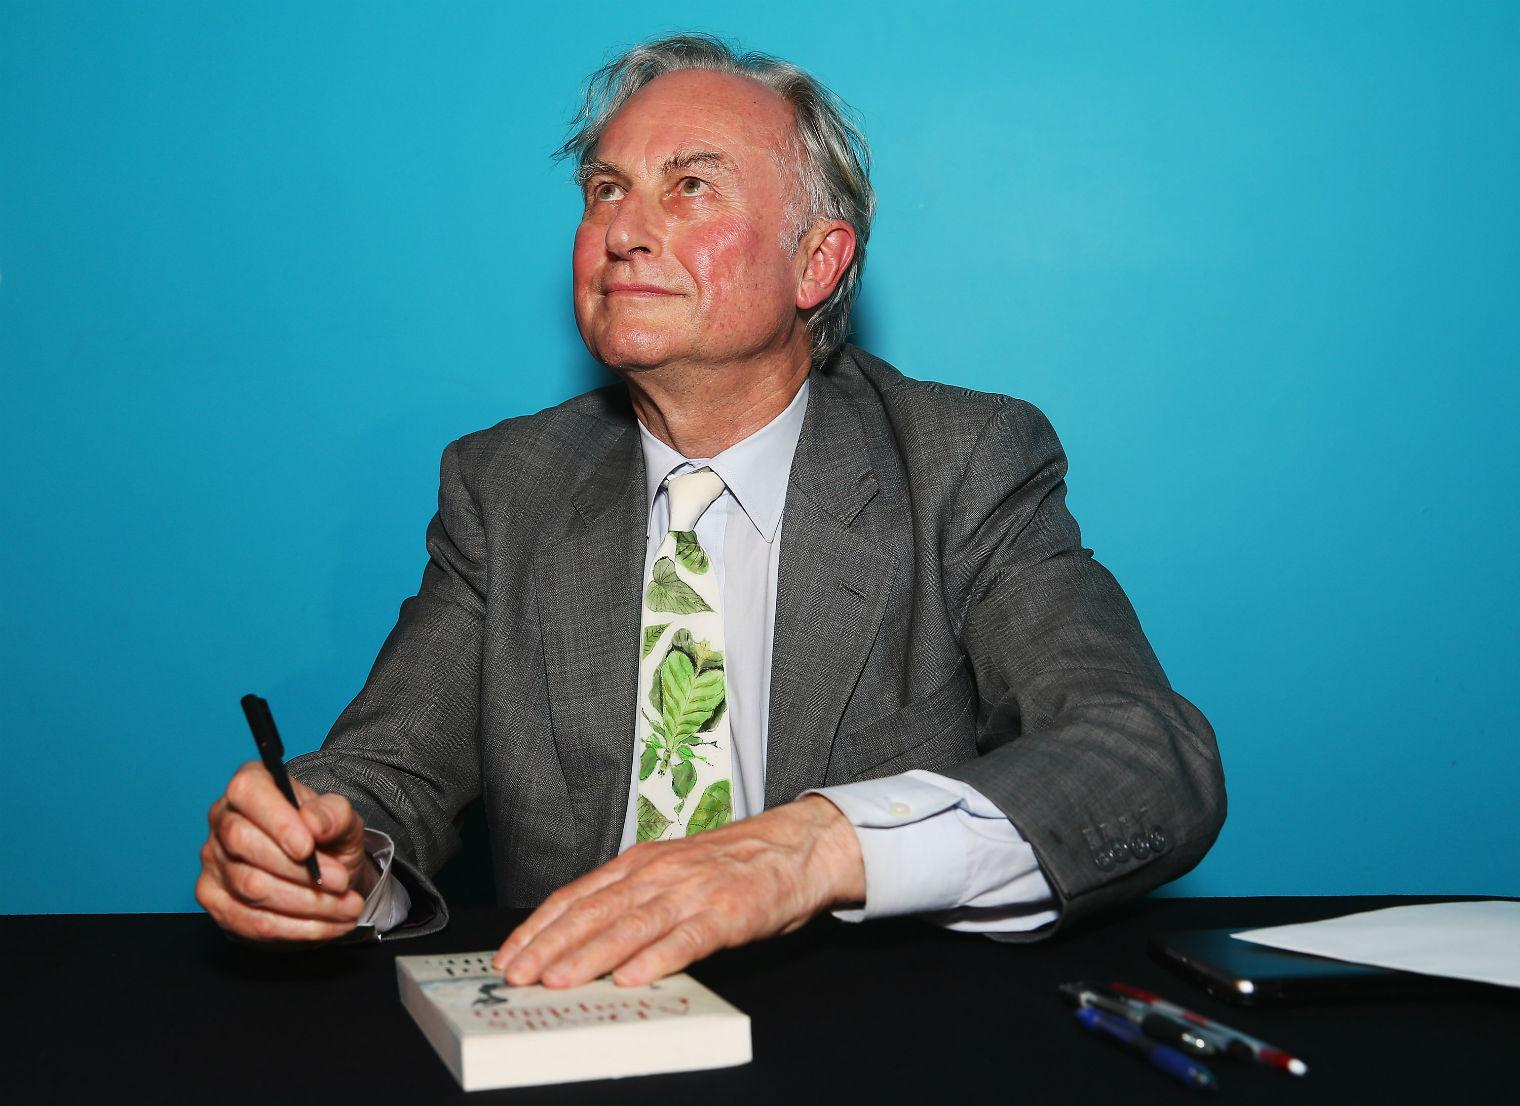 Richard Dawkins urges New Zealand to offer UK and US scientists citizenship so they can escape 'redneck bigotry'